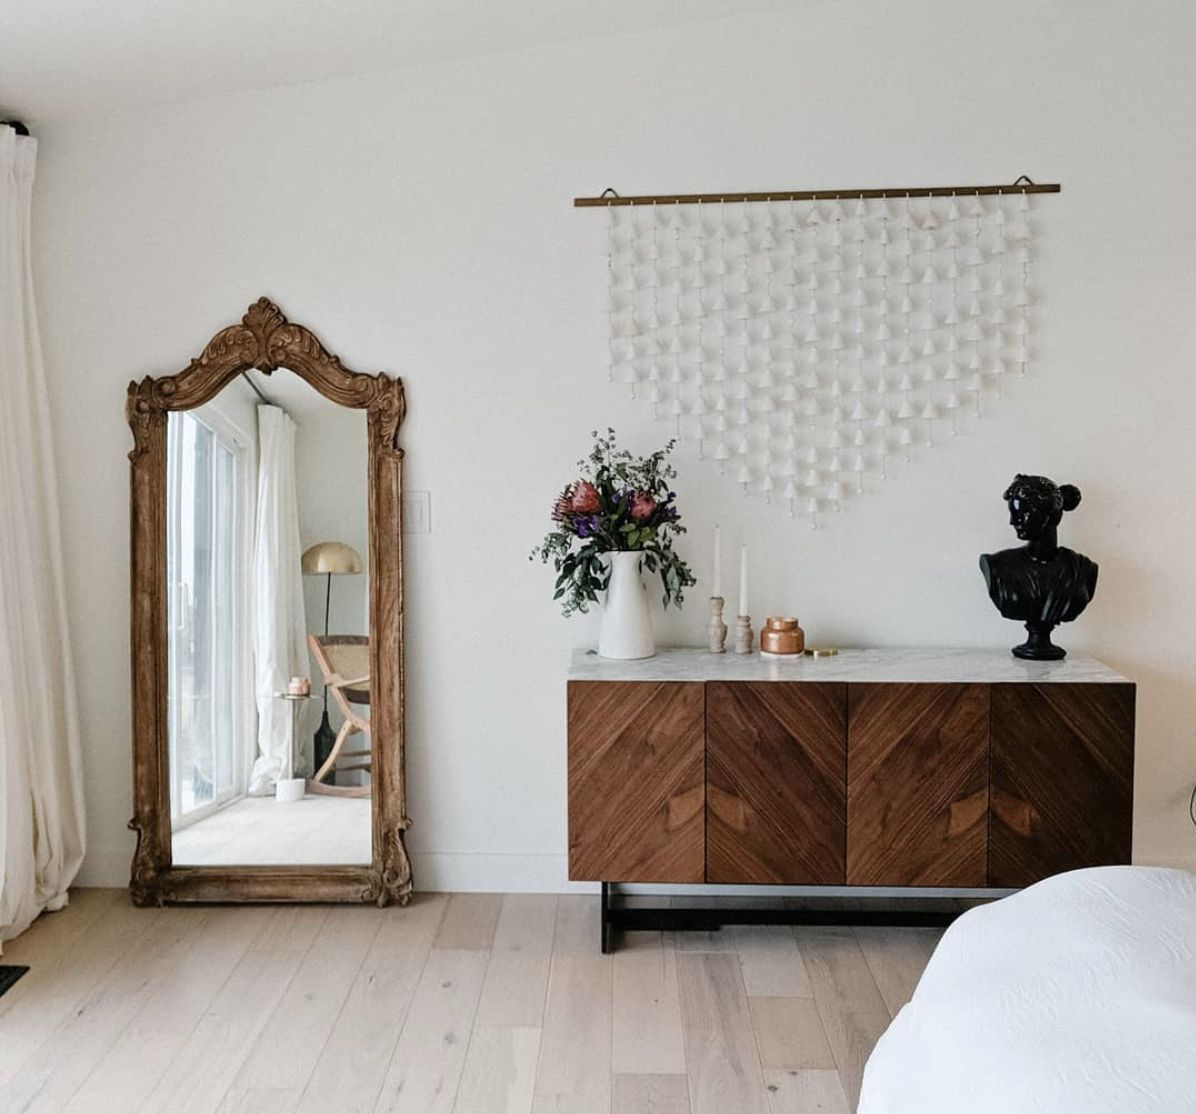 minimalist bedroom with rustic wooden mirror propped in corner